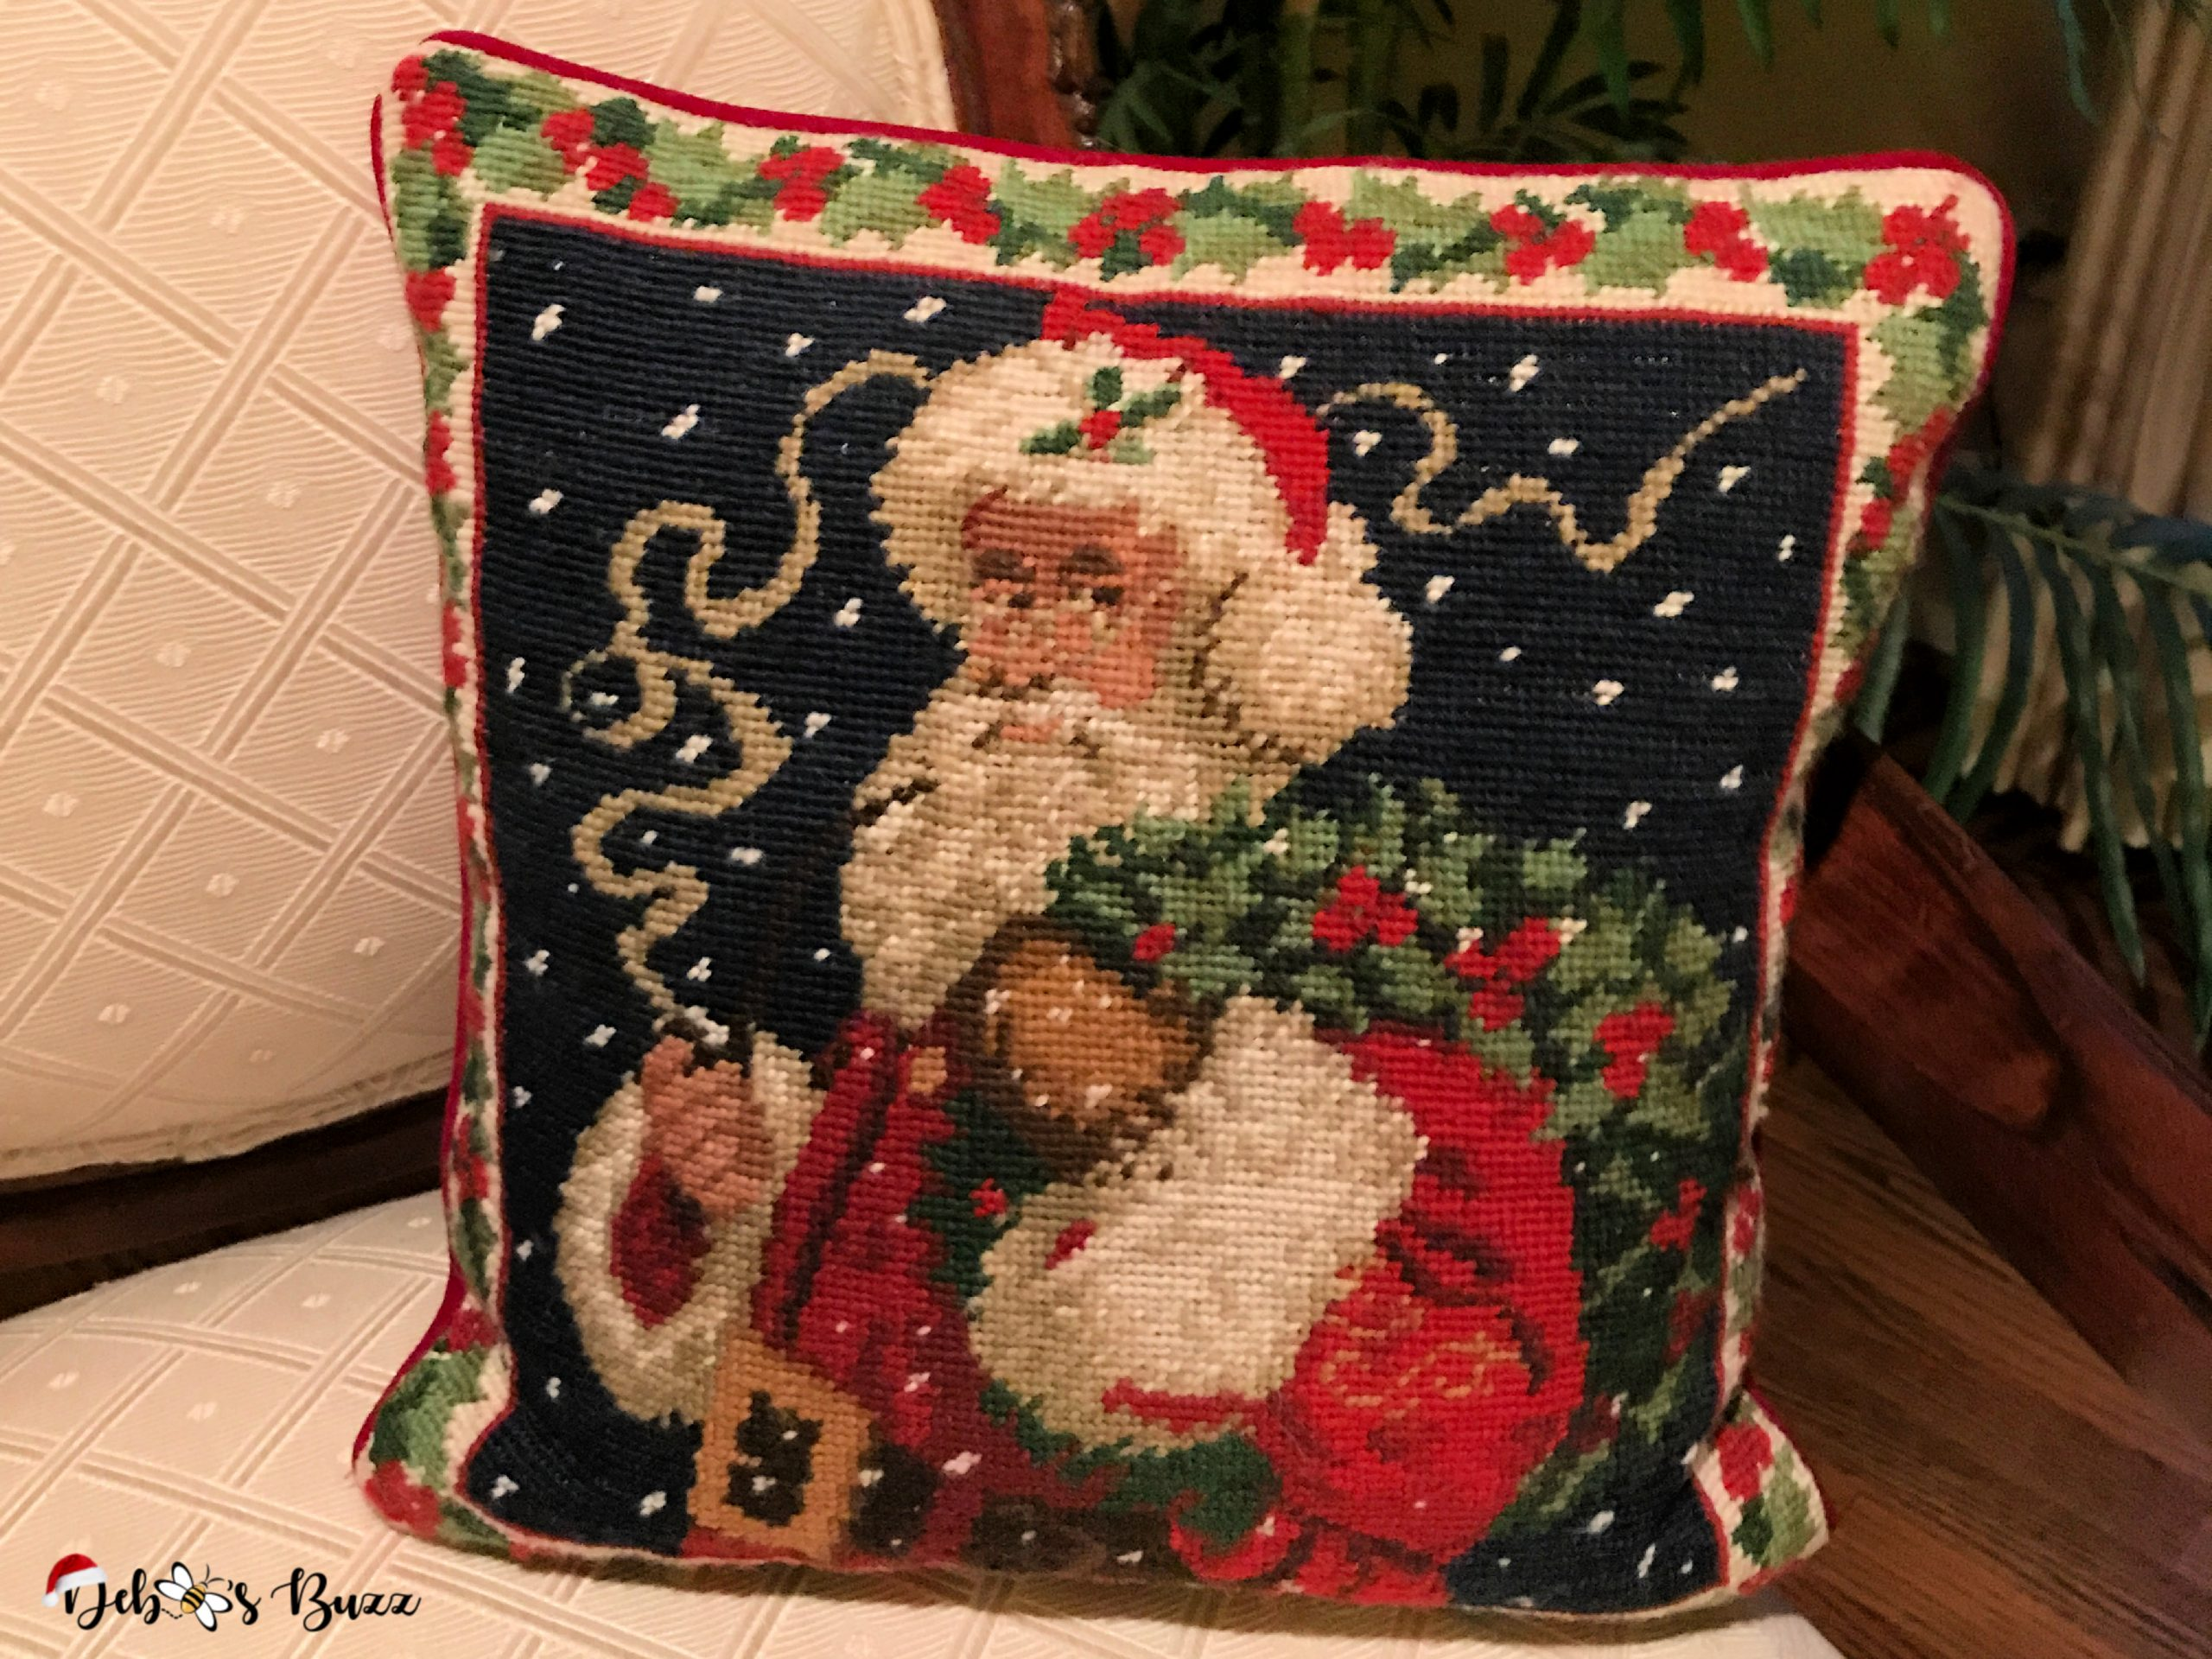 Santa-Claus-collection-needlepoint-pillow